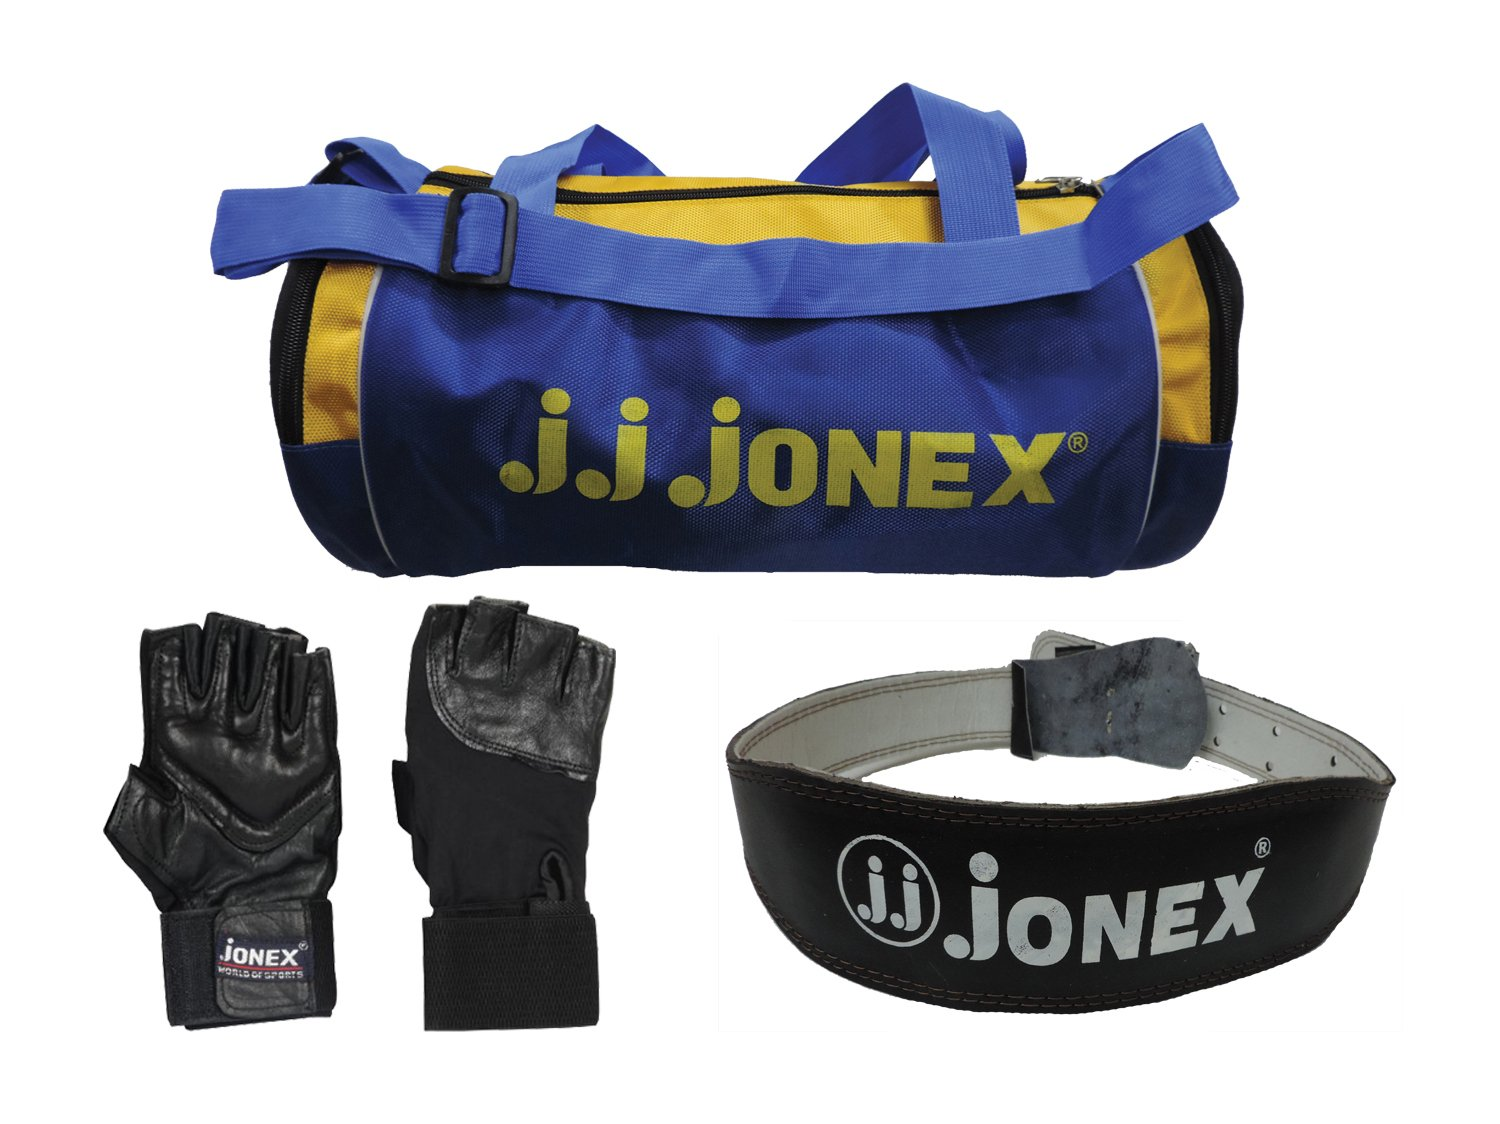 f8b4719fb869 Buy JJ JONEX Combo Leather Weight Belt with Gym Bag and Gloves (Blue and  Black) Online at Low Prices in India - Amazon.in